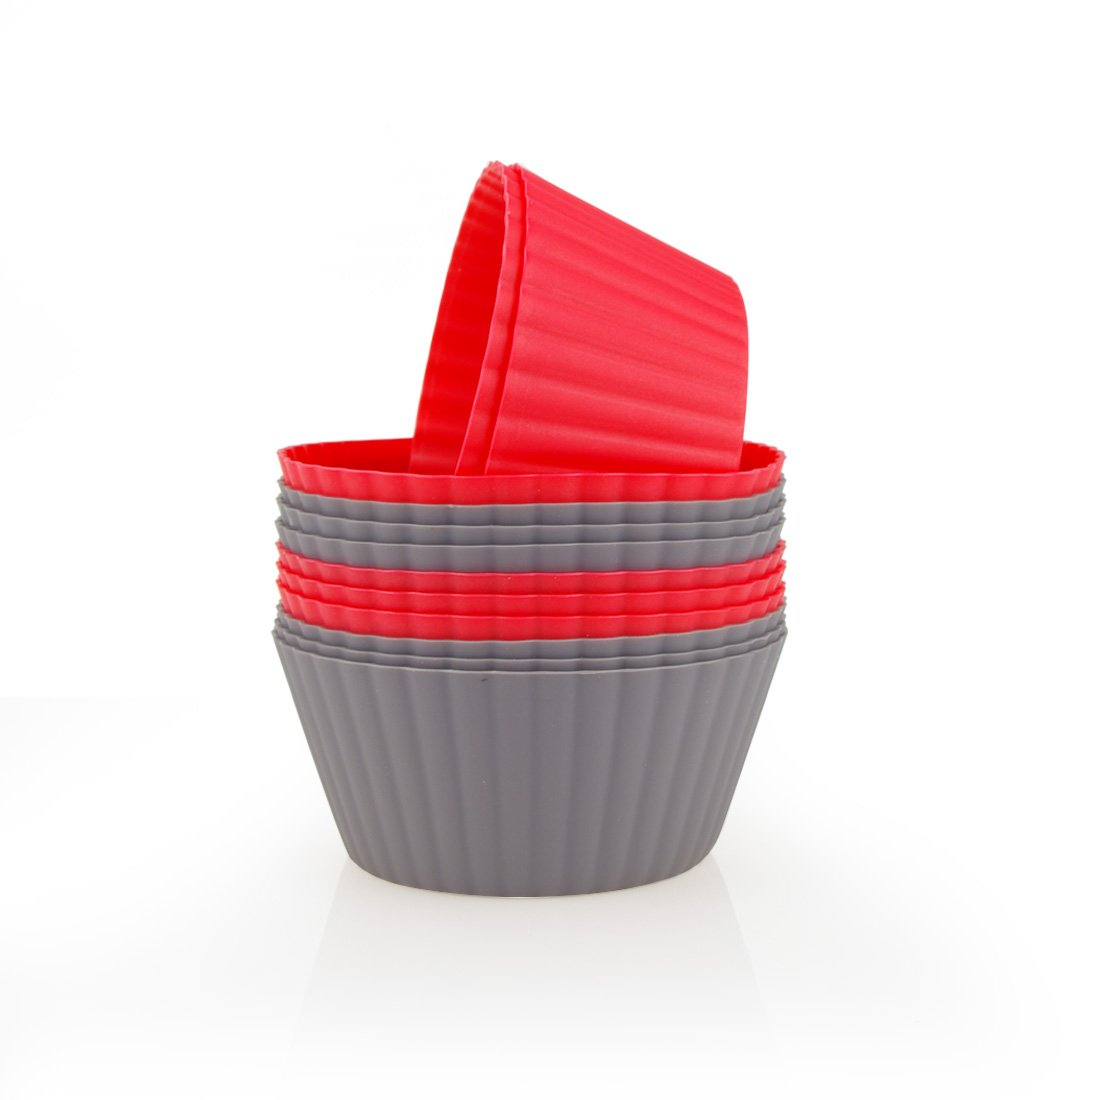 Mirenlife 12 Pack Reusable Nonstick Jumbo Silicone Baking Cups, Cupcake and Muffin Liners, 3.8 Inch Large Size, in Storage Container, Red and Dark Gray Colors, Round by Mirenlife